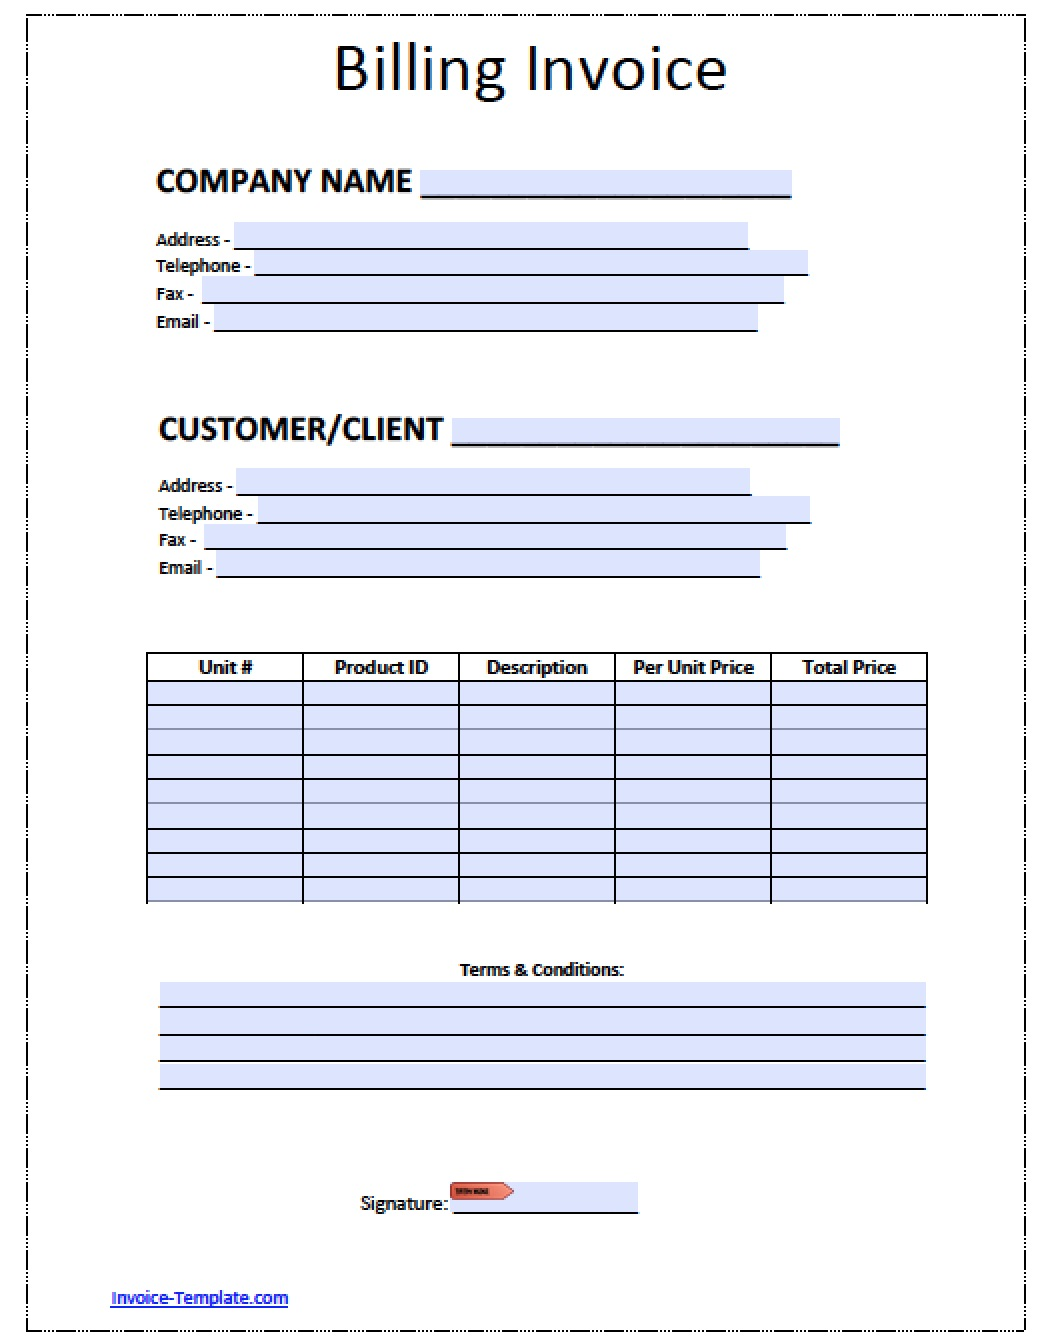 payment invoice template word  Free Billing Invoice Template | Excel | PDF | Word (.doc)